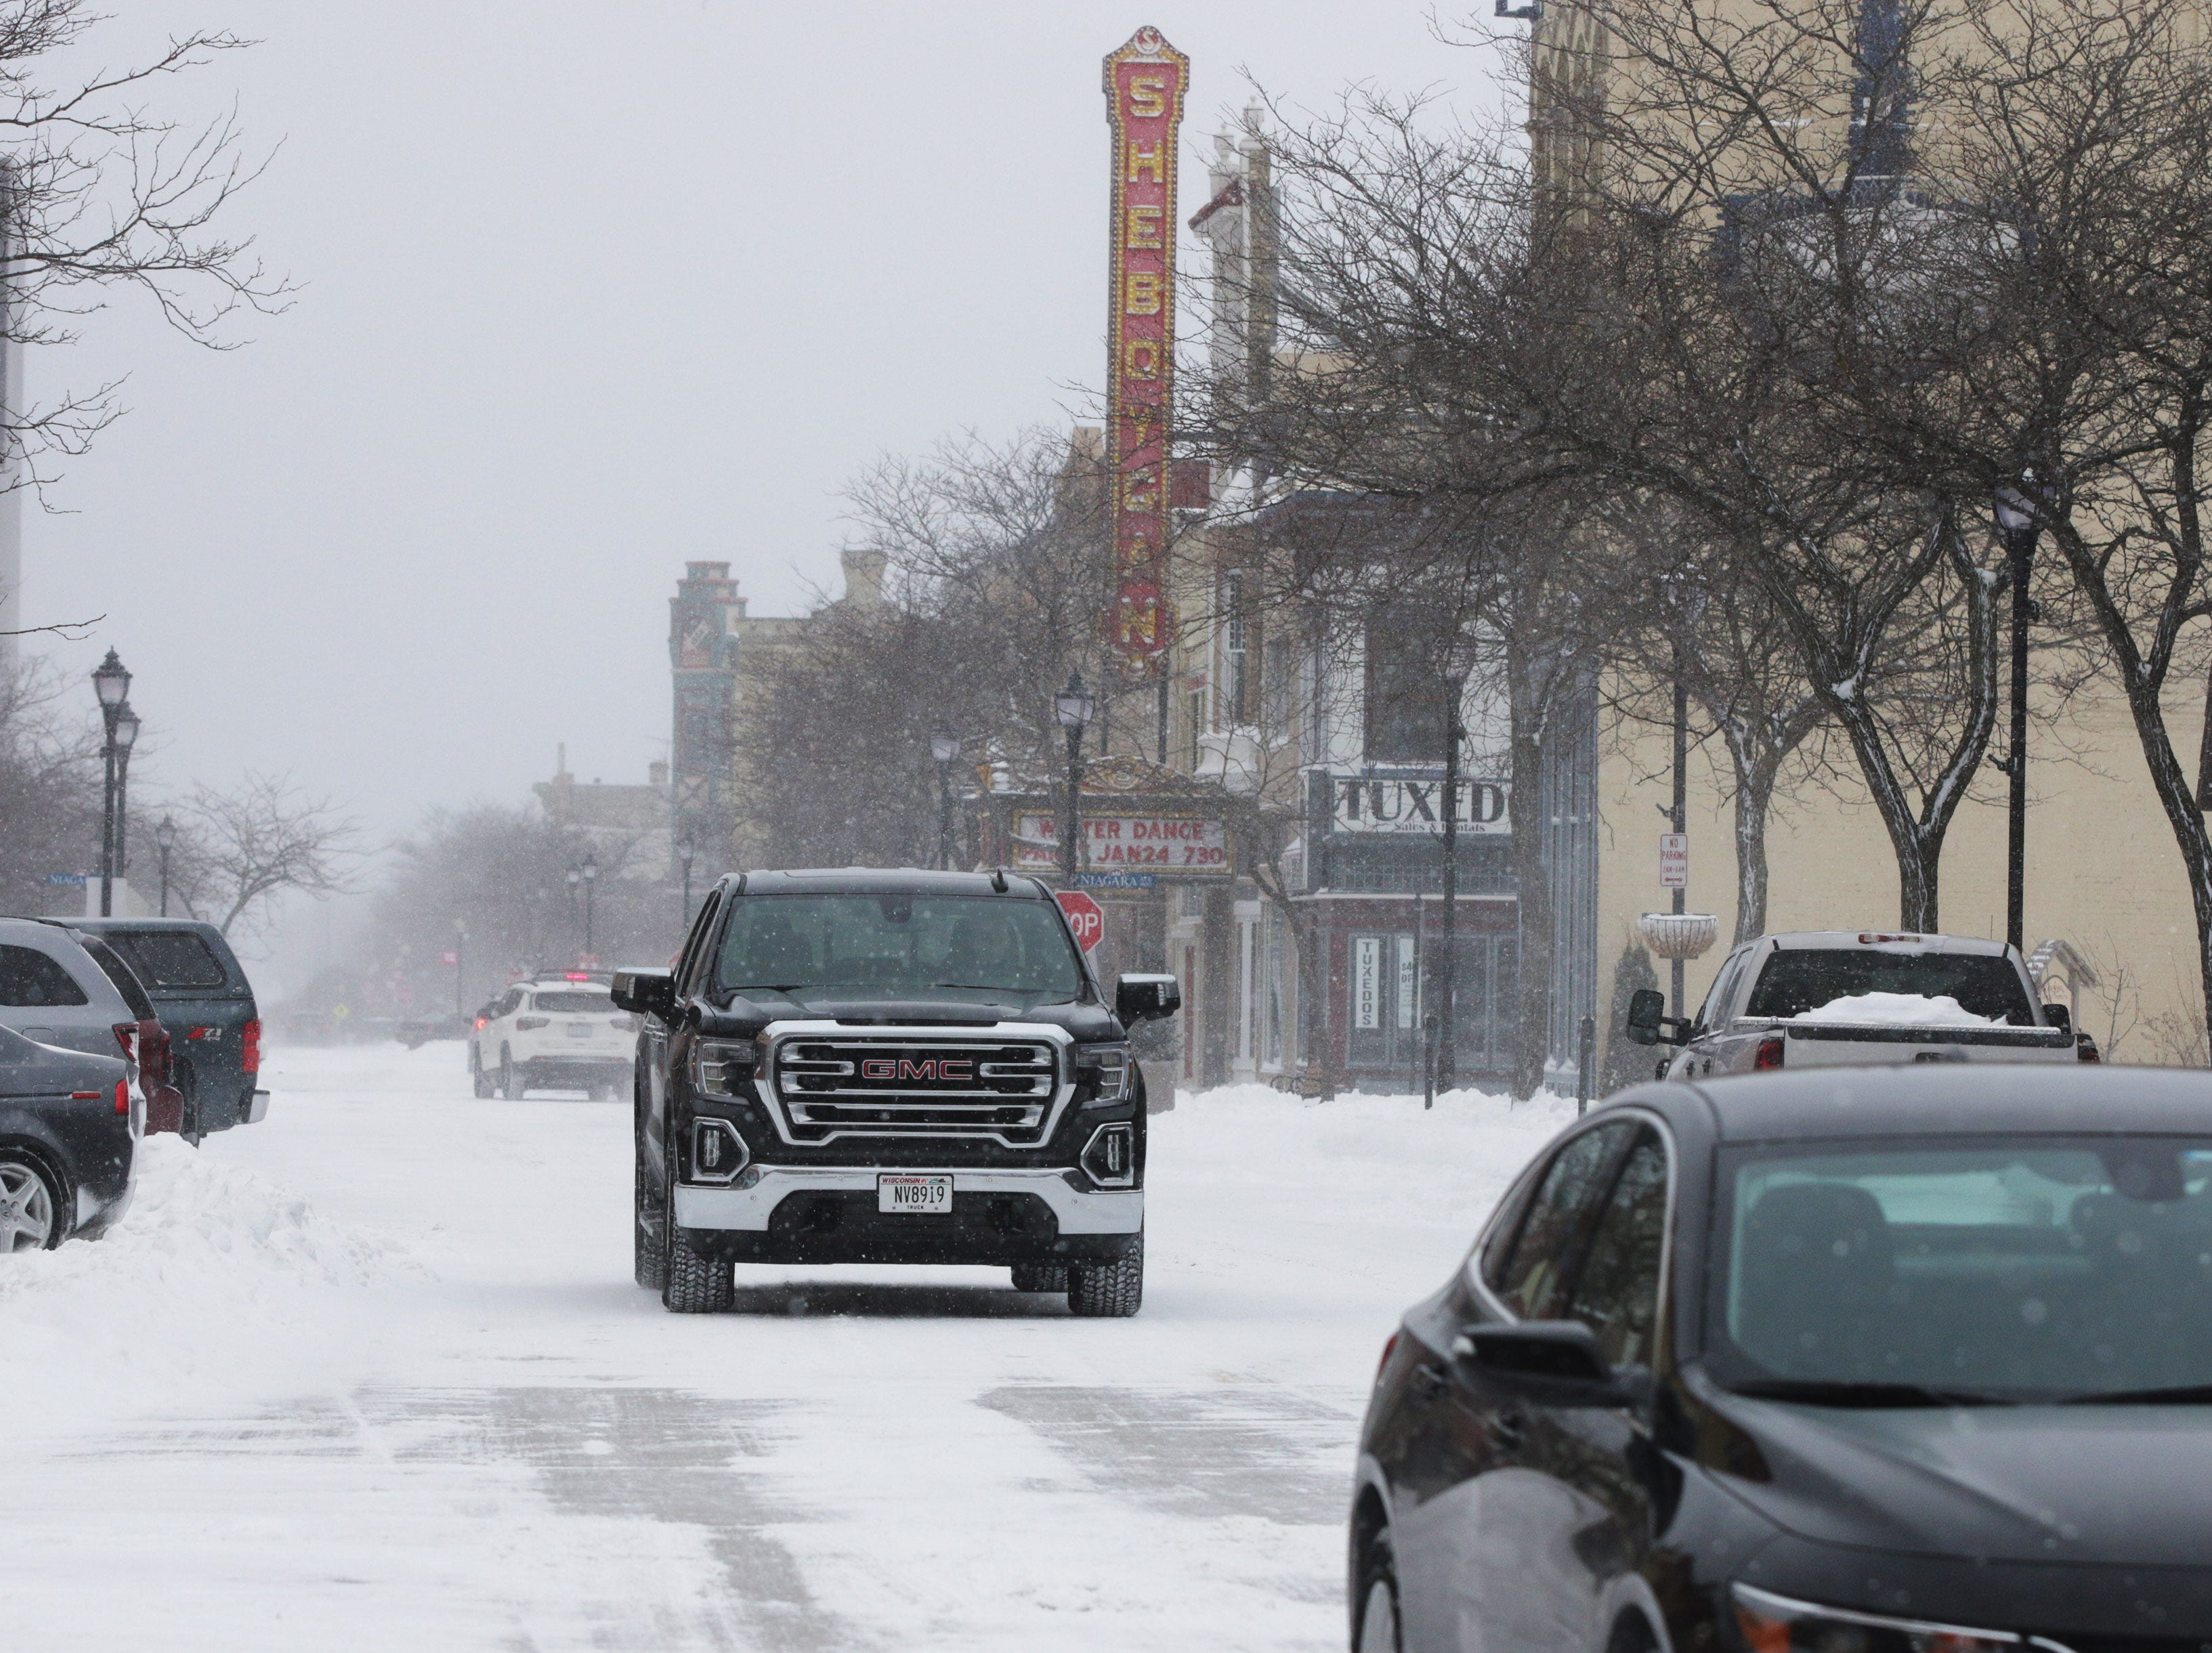 A truck drives along North 8th Street, Saturday, January 19, 2019, in Sheboygan, Wis. Several inches of snow fell, slowing traffic and making snow removal a big activity.